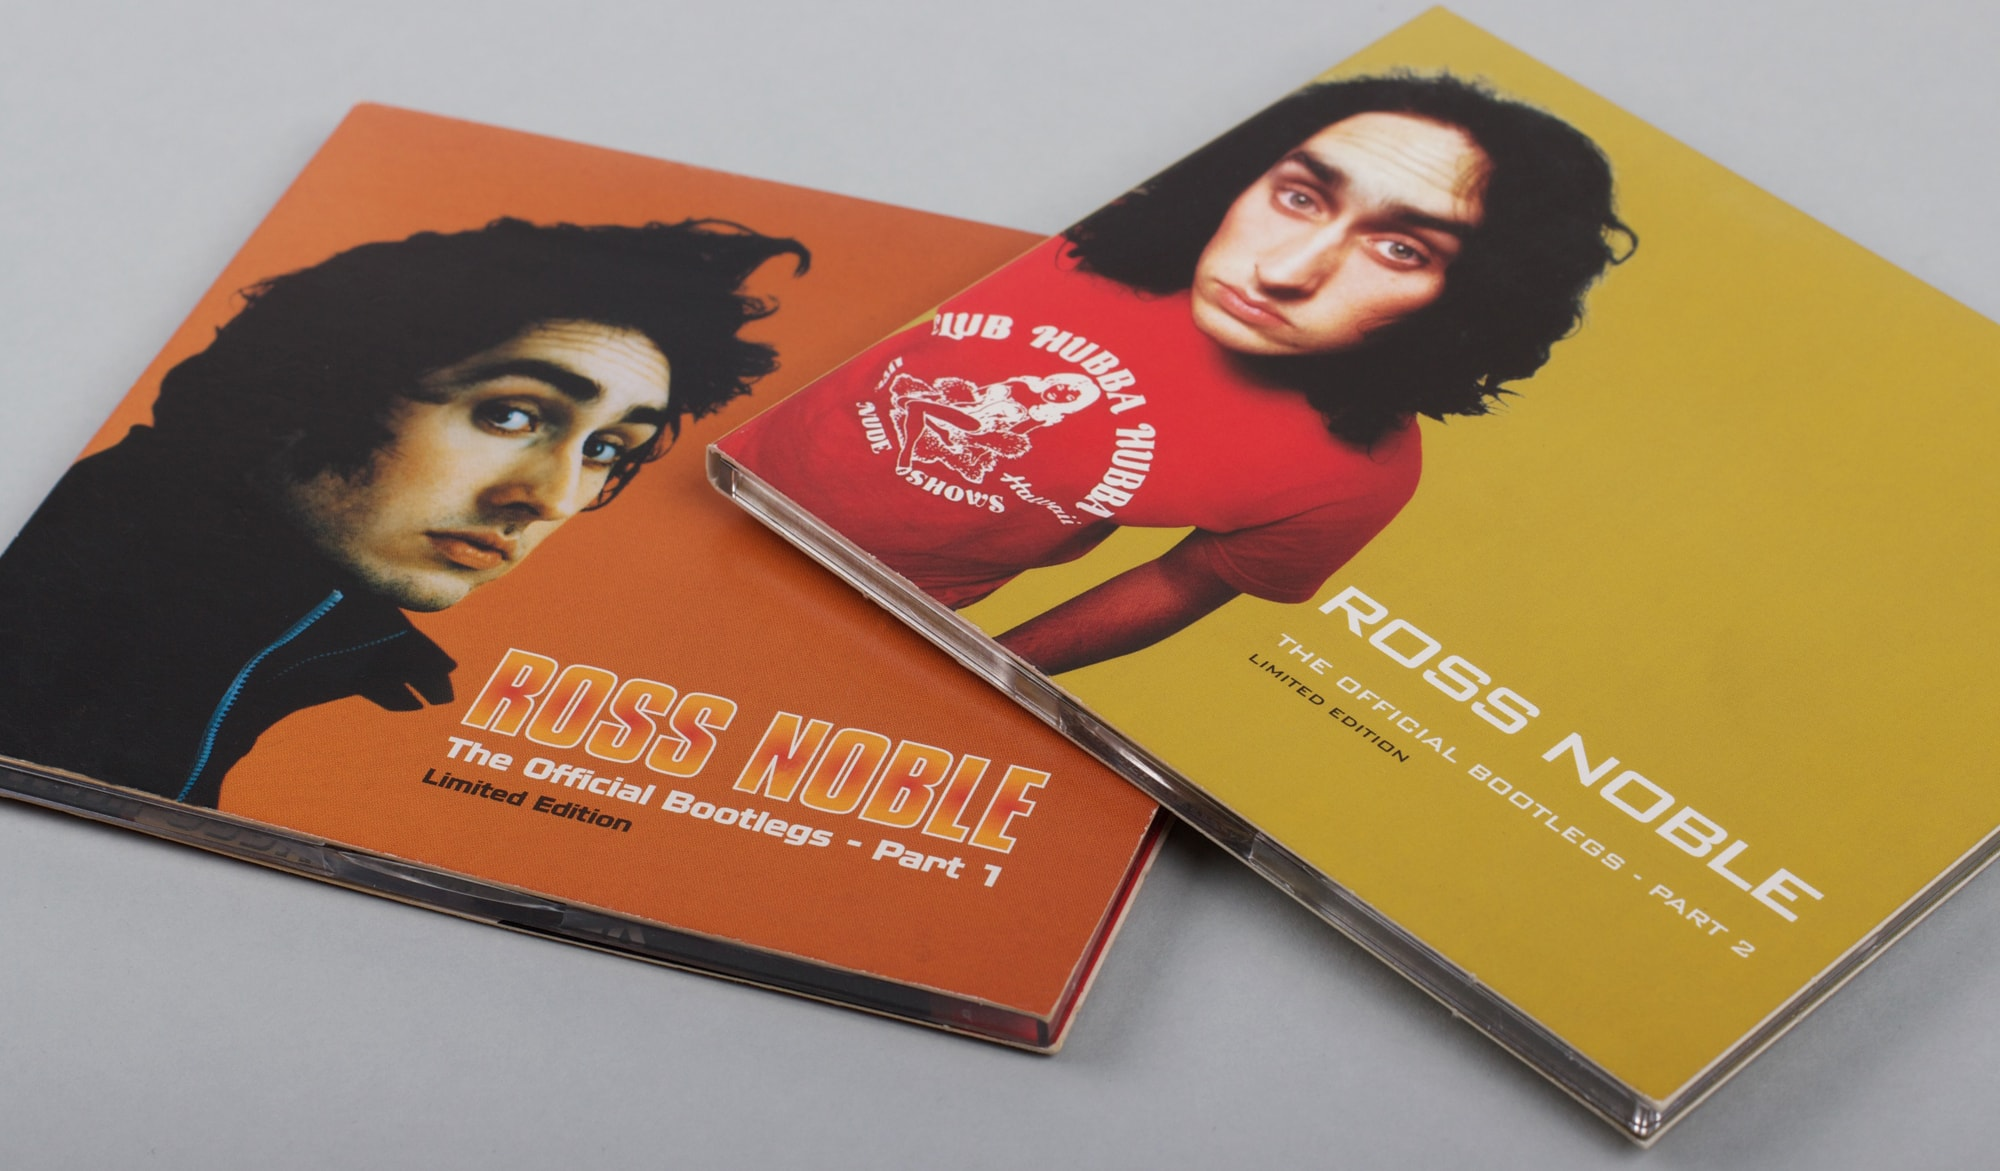 Our Work - Case Study: Ross Noble CD - The Official Bootlegs Part 1